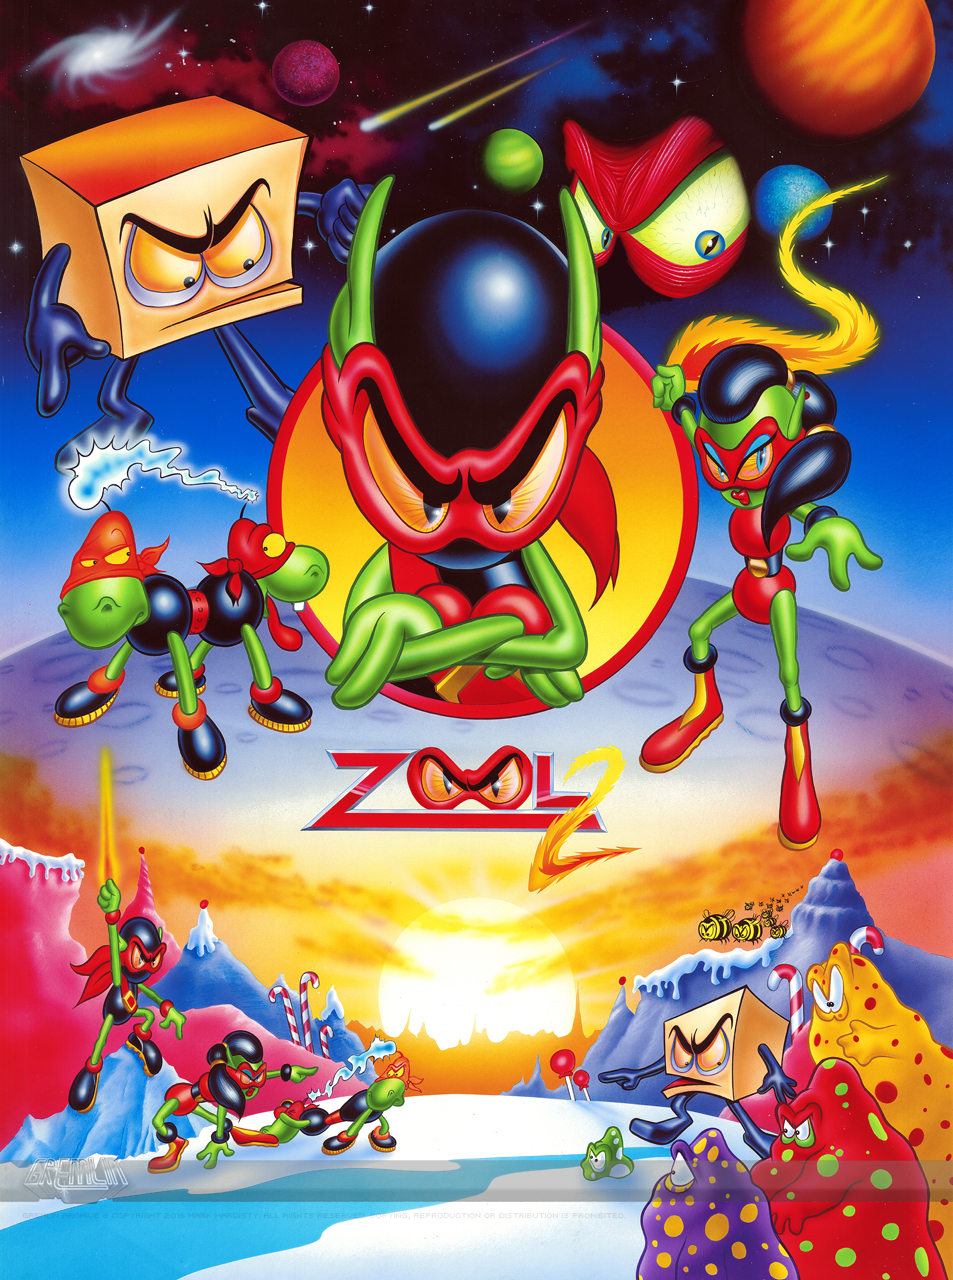 Zool 2 Poster